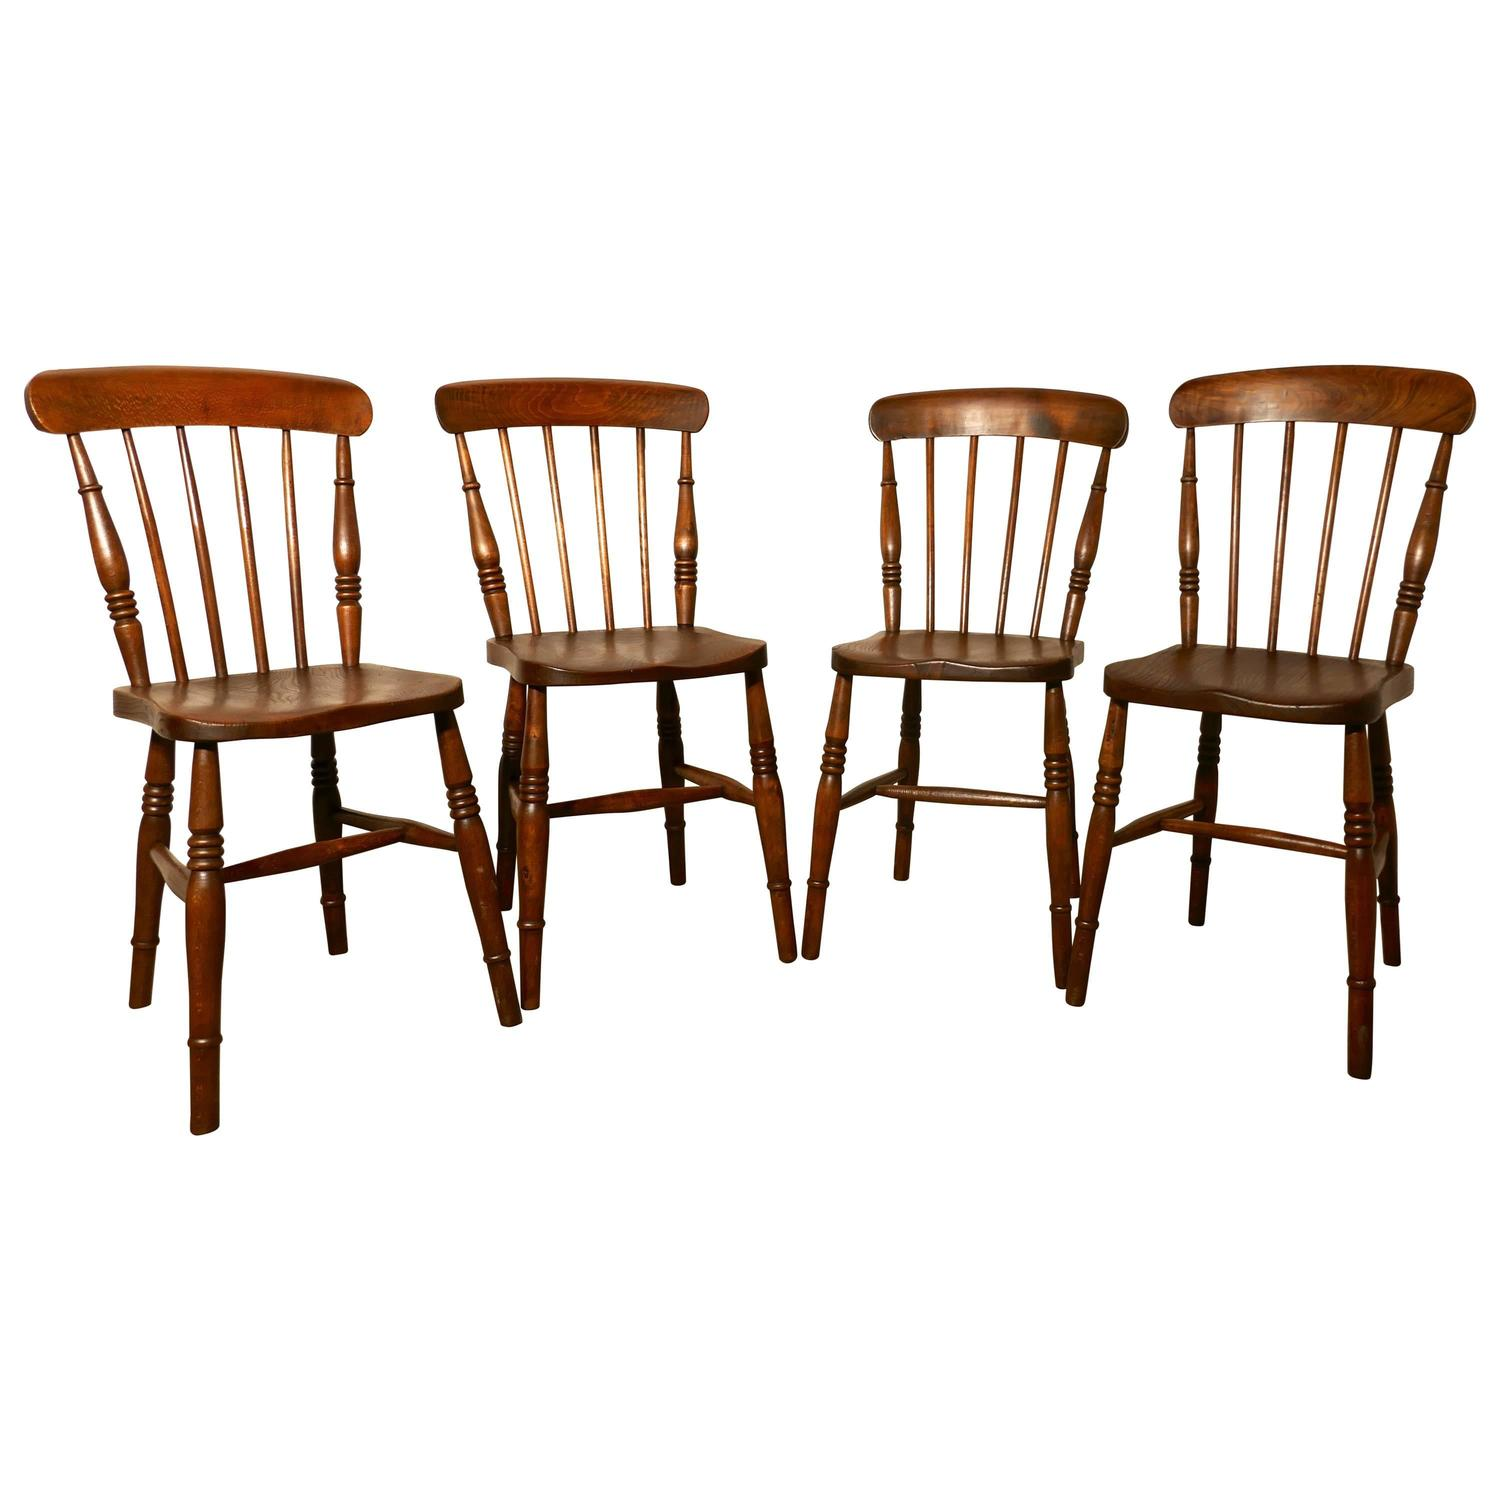 Set of Four Victorian Elm Seated Stick Back Windsor Kitchen Dining